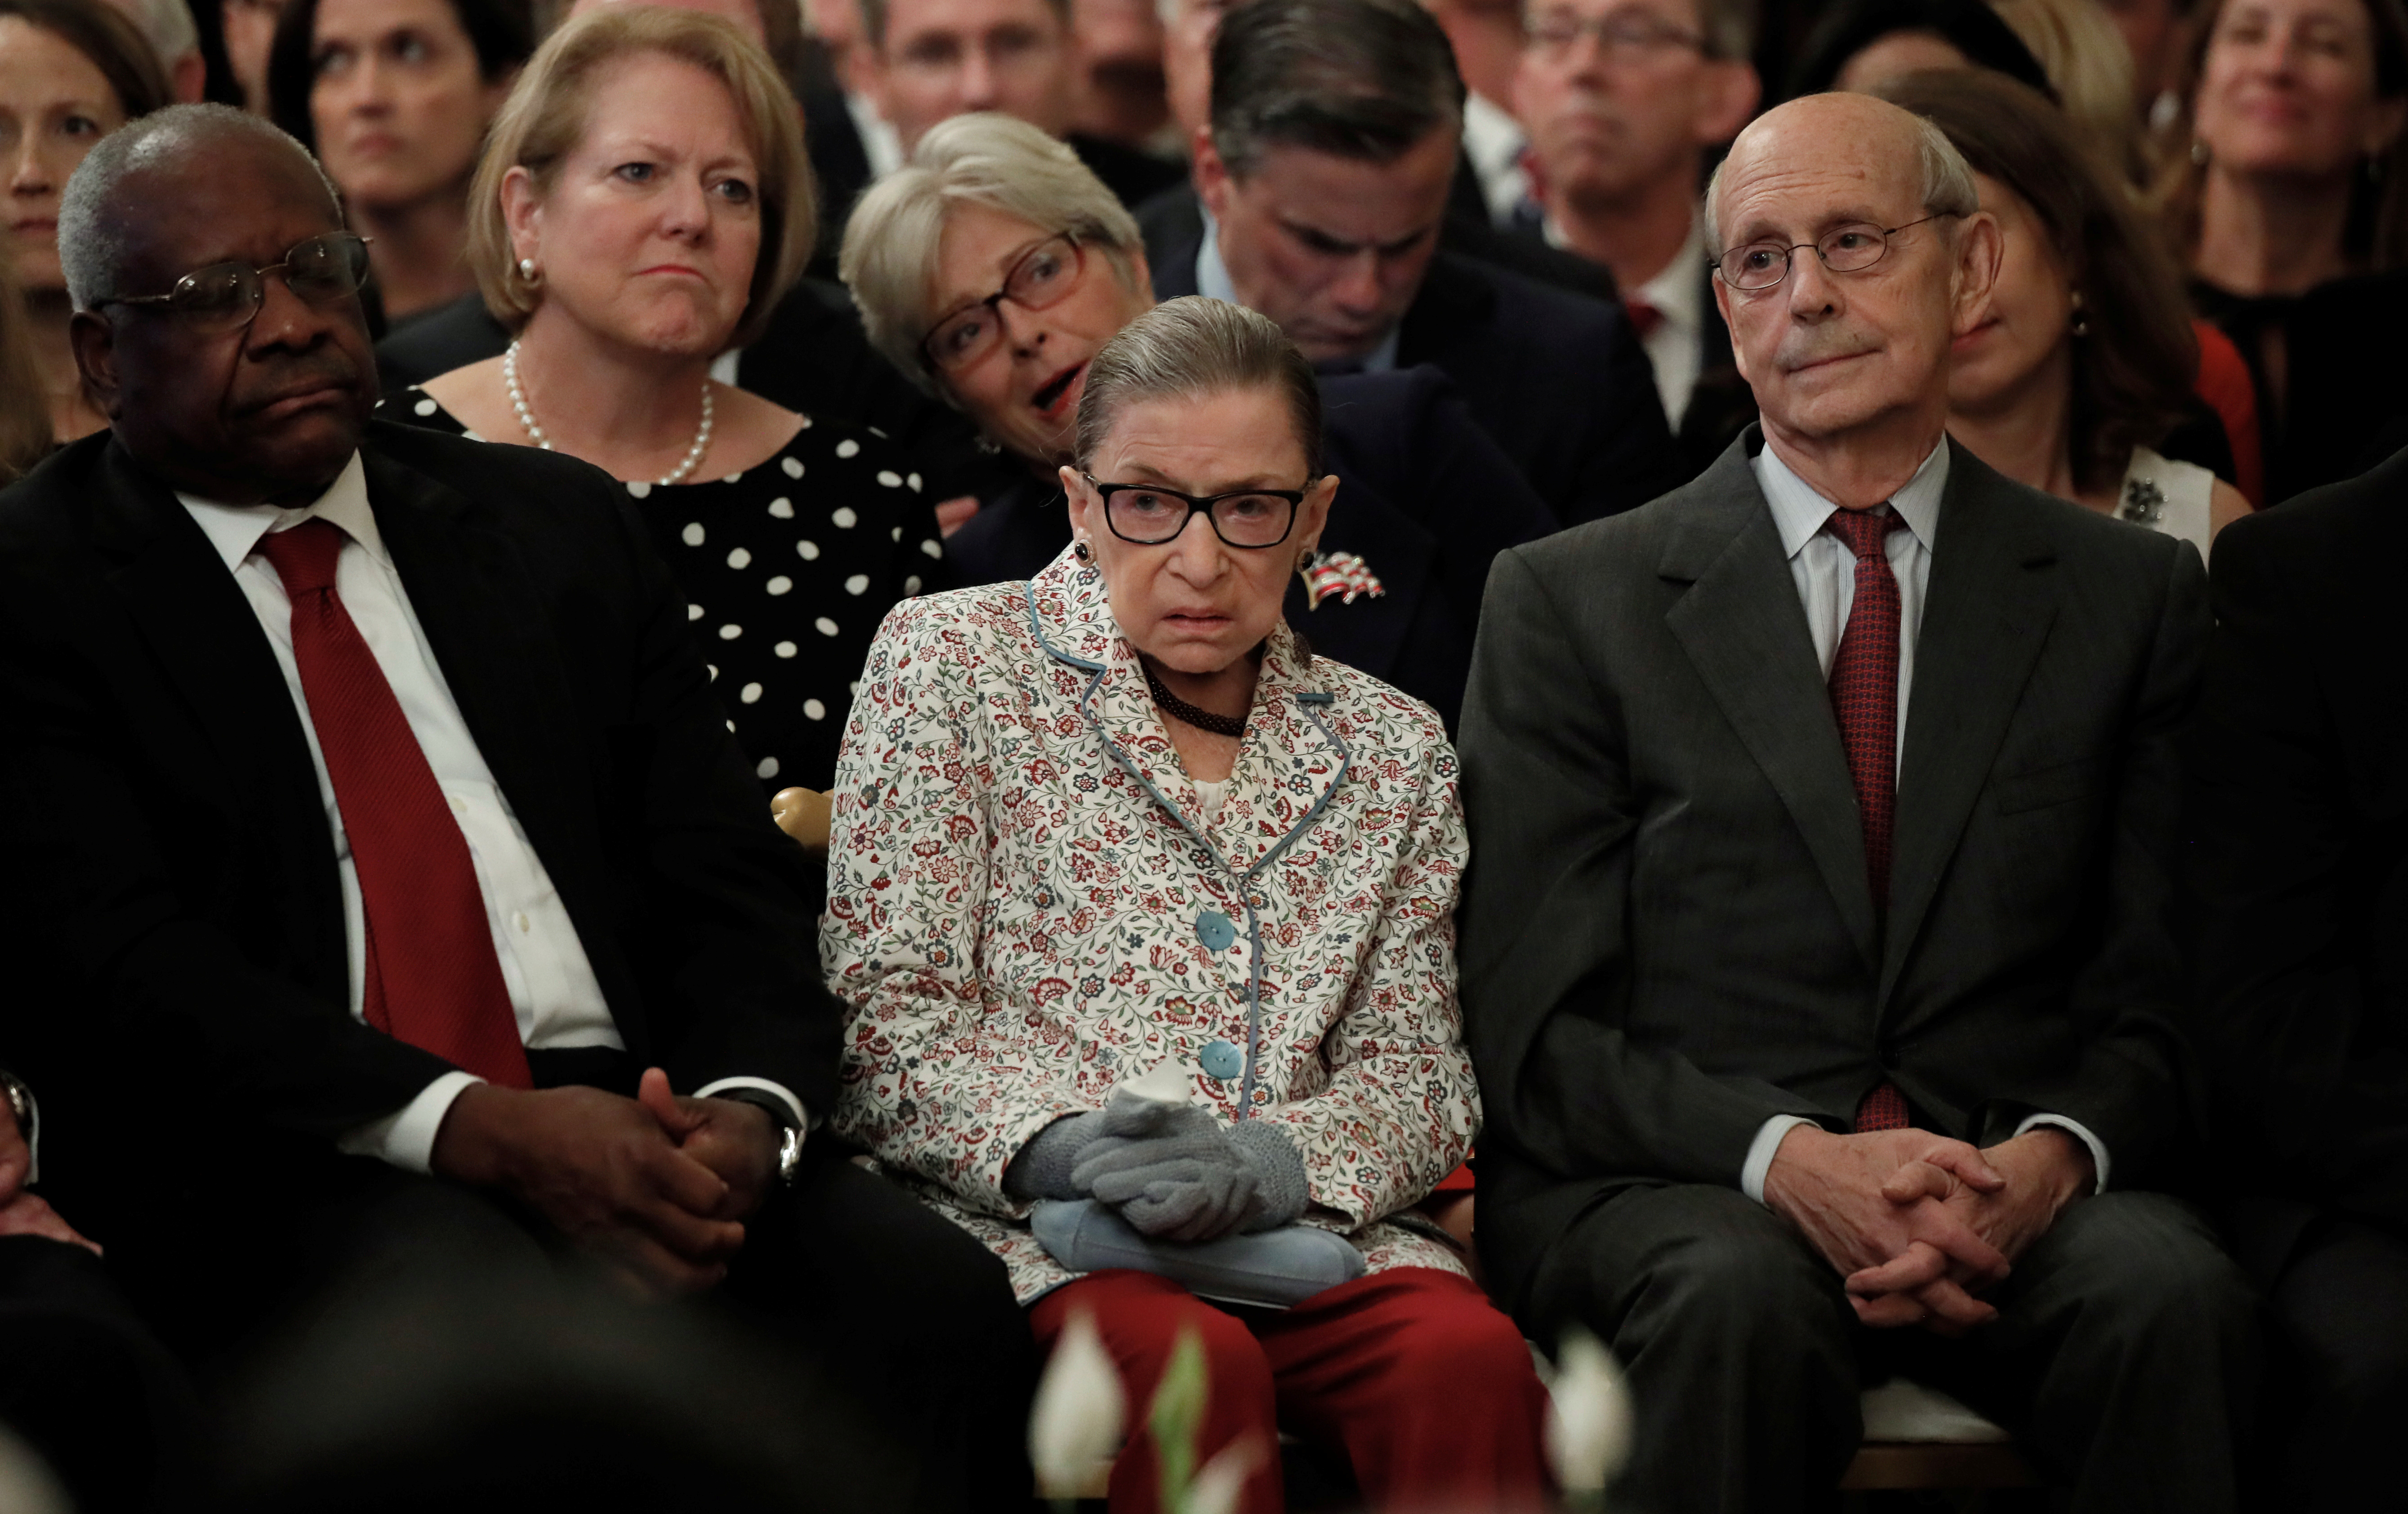 U.S. Supreme Court Associate Justices (L-R) Clarence Thomas, Ruth Bader Ginsburg and Stephen Breyer. REUTERS/Jim Bourg